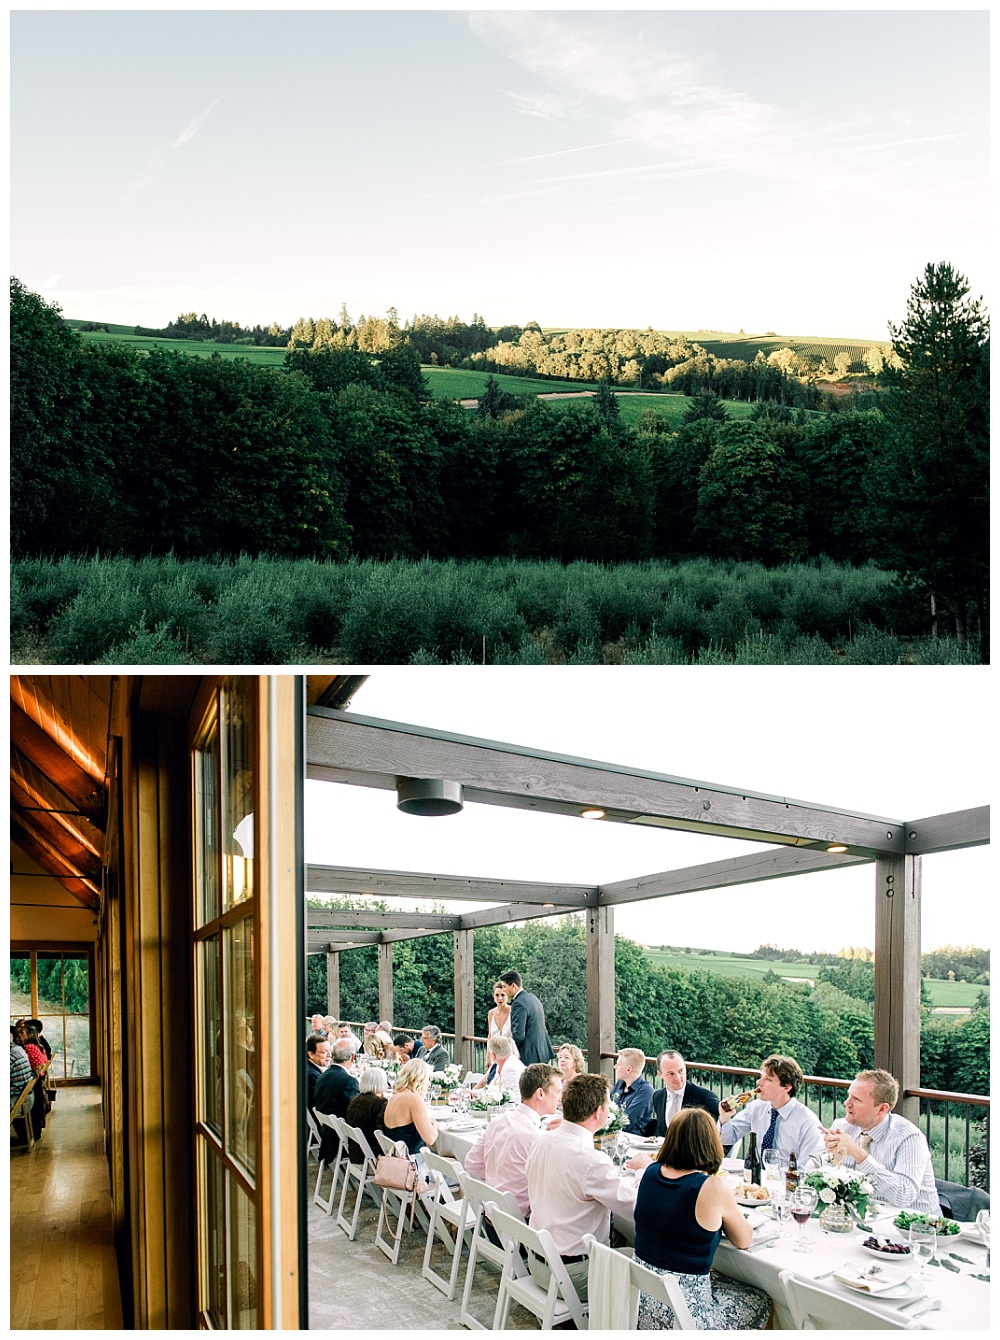 dinner and sweeping landscape views of oregon wine country near dayton in the willamette valley